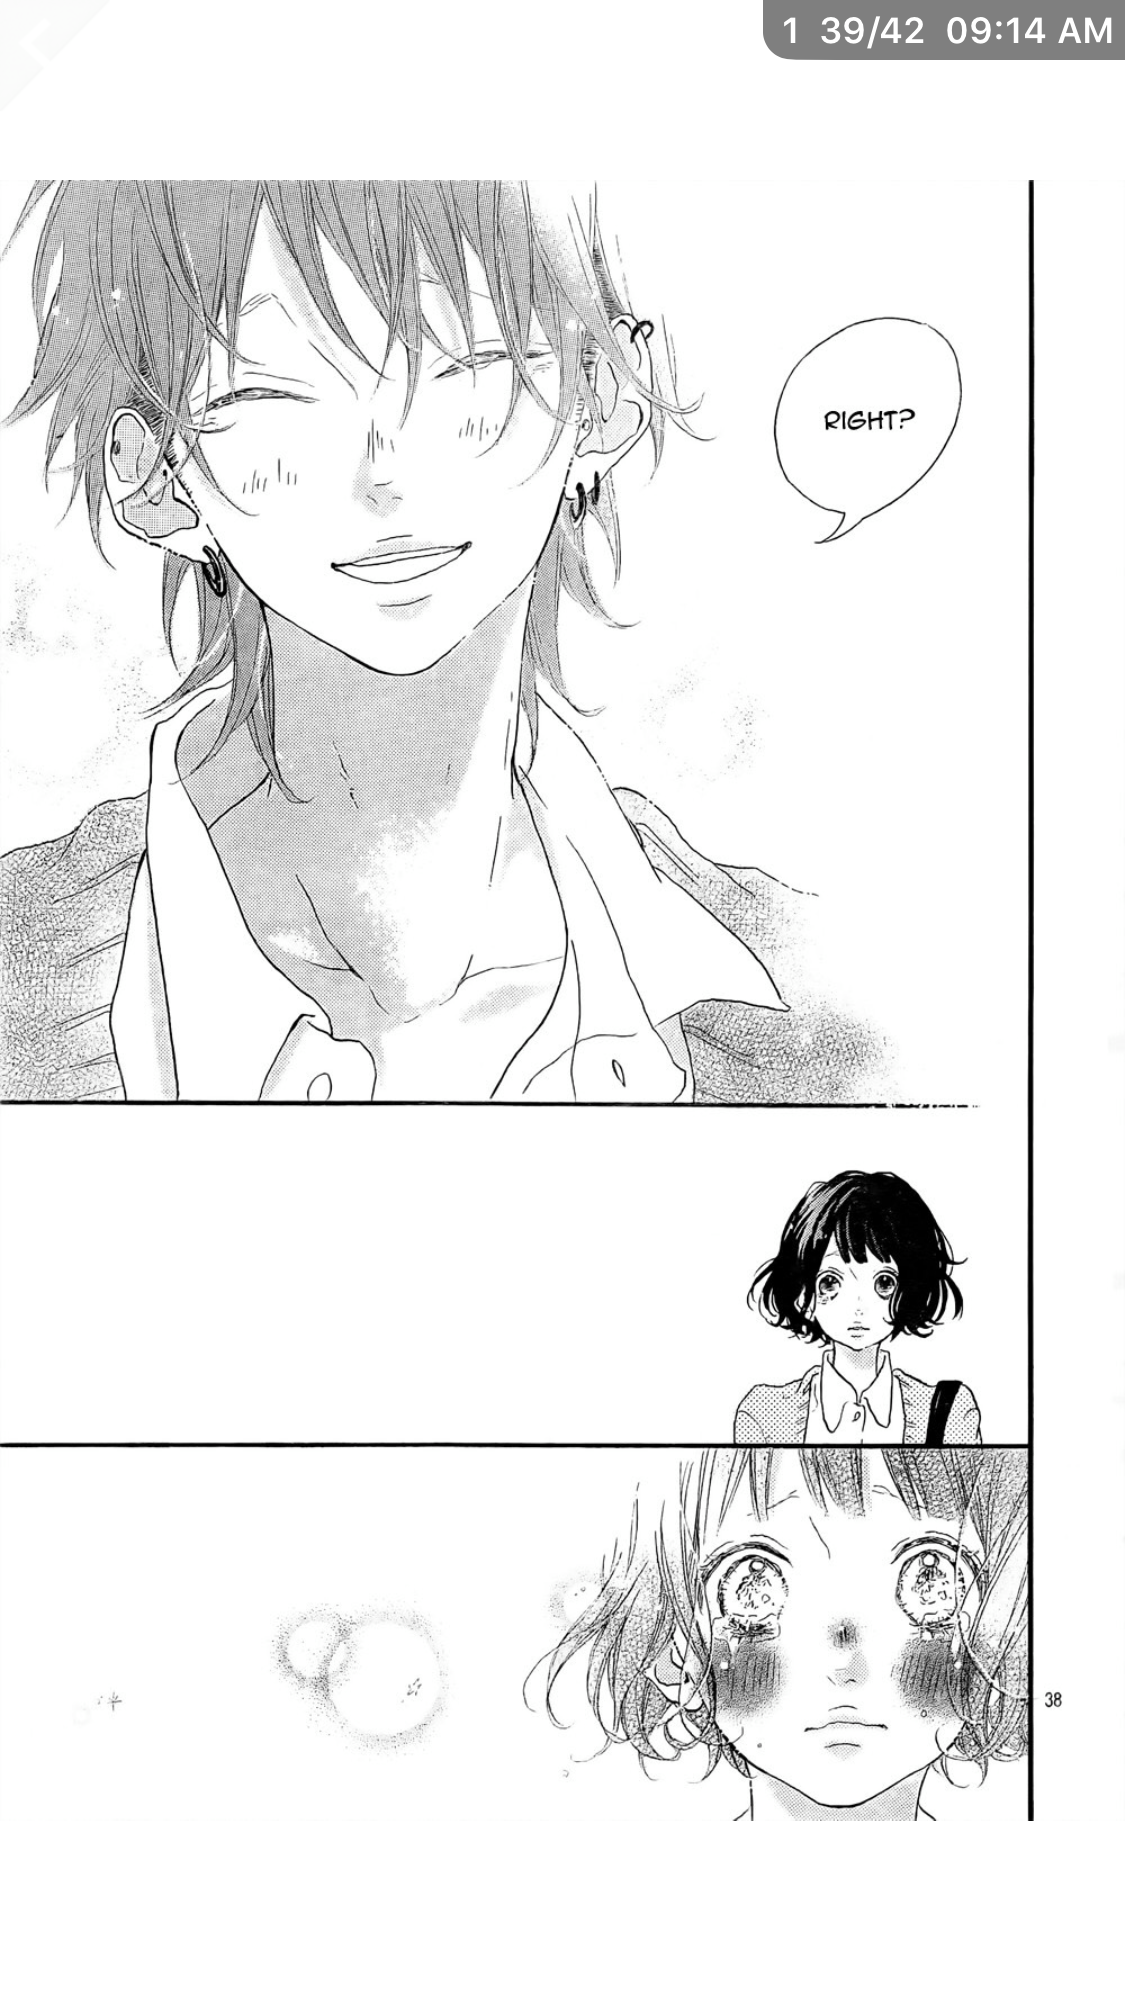 Pin by juicyfruitjin on Manga Manga romance, Baca manga